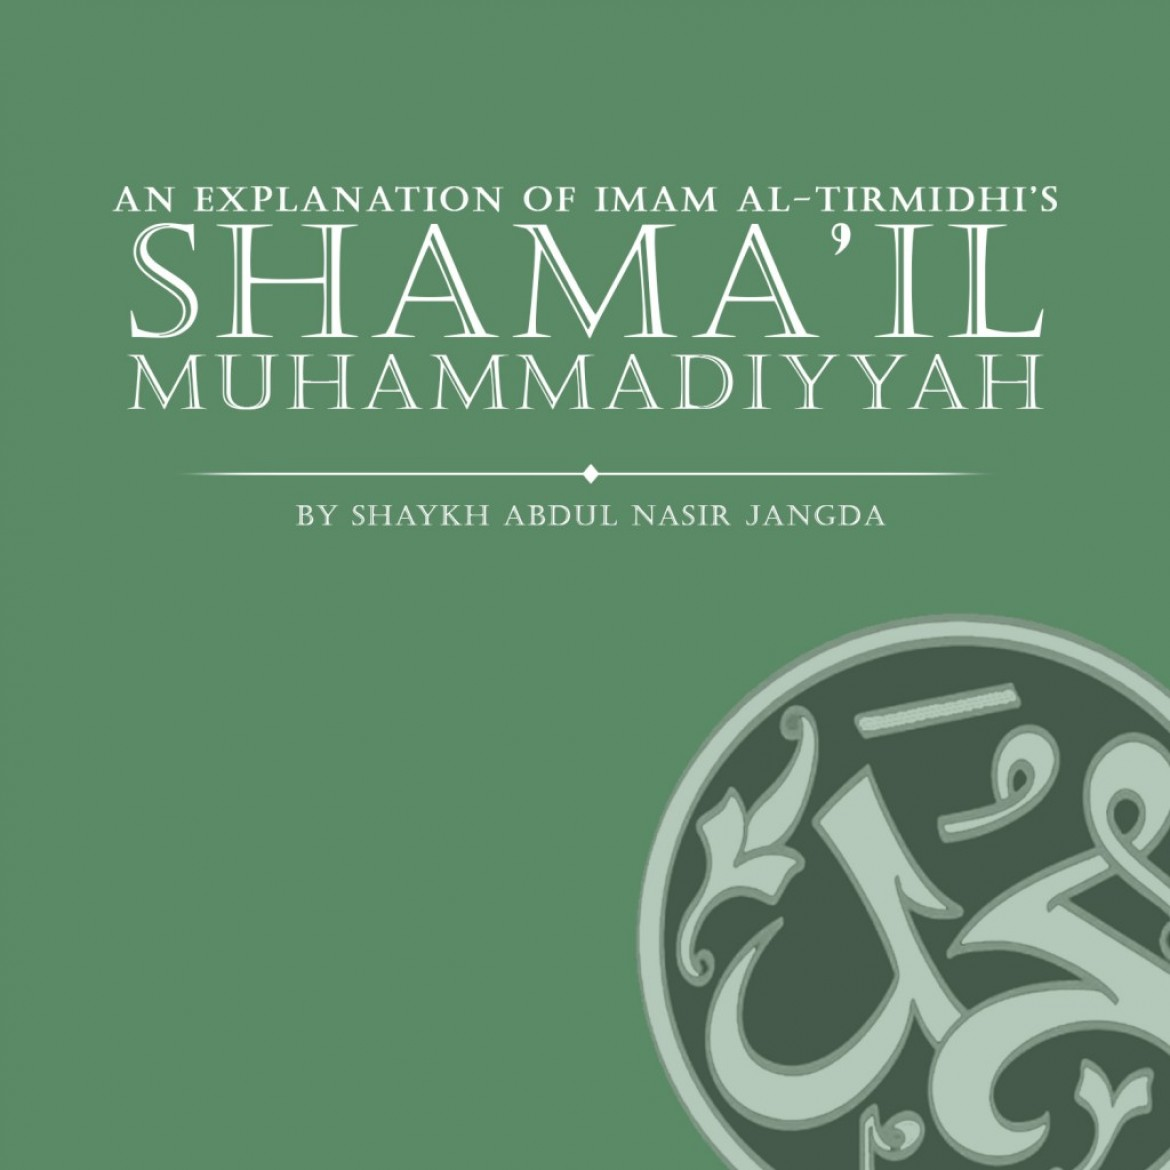 Shama'il – The Prophetic Personality: The Humility of the Prophet